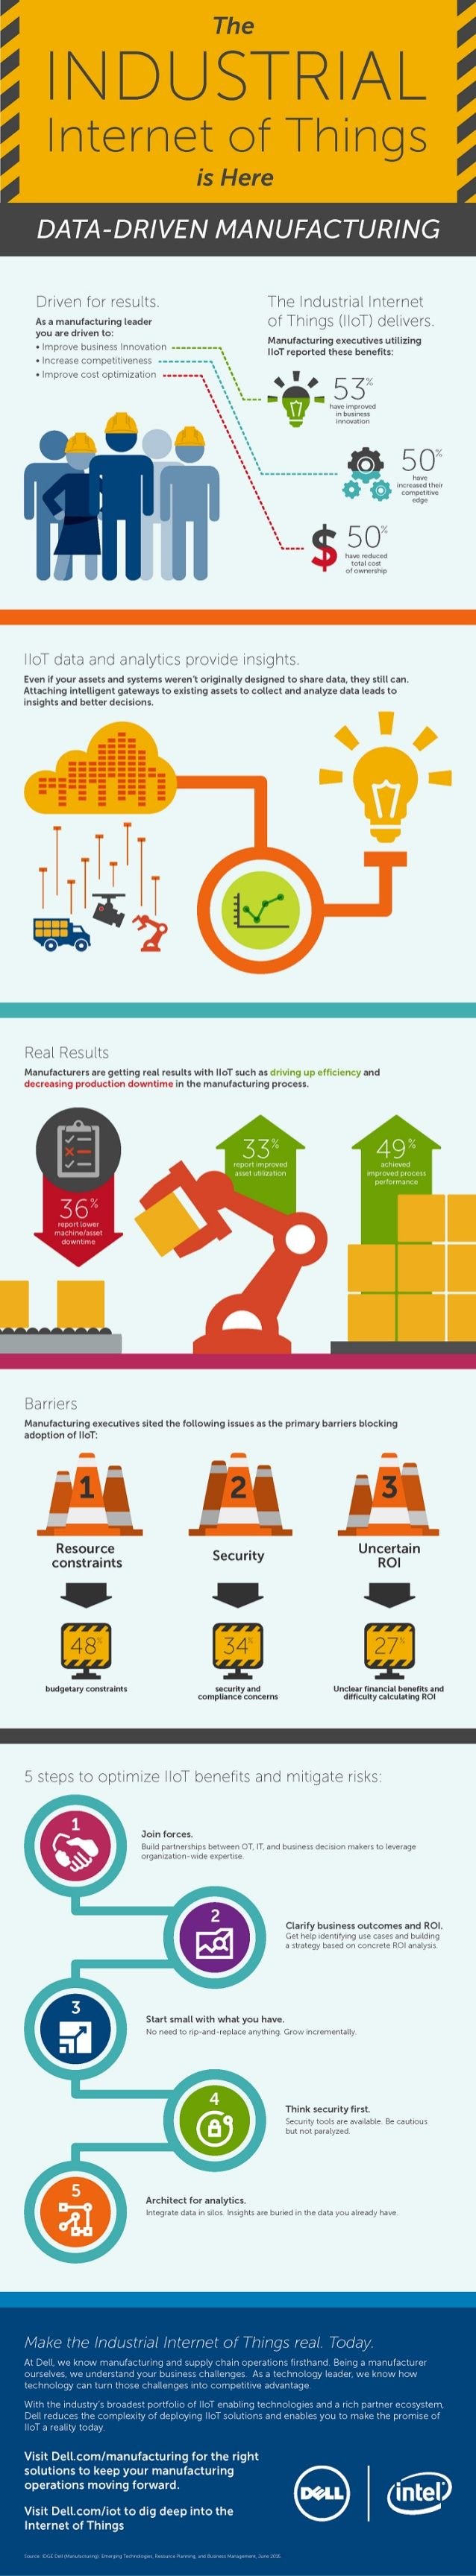 The Industrial IoT is Here - by Dell & Intel